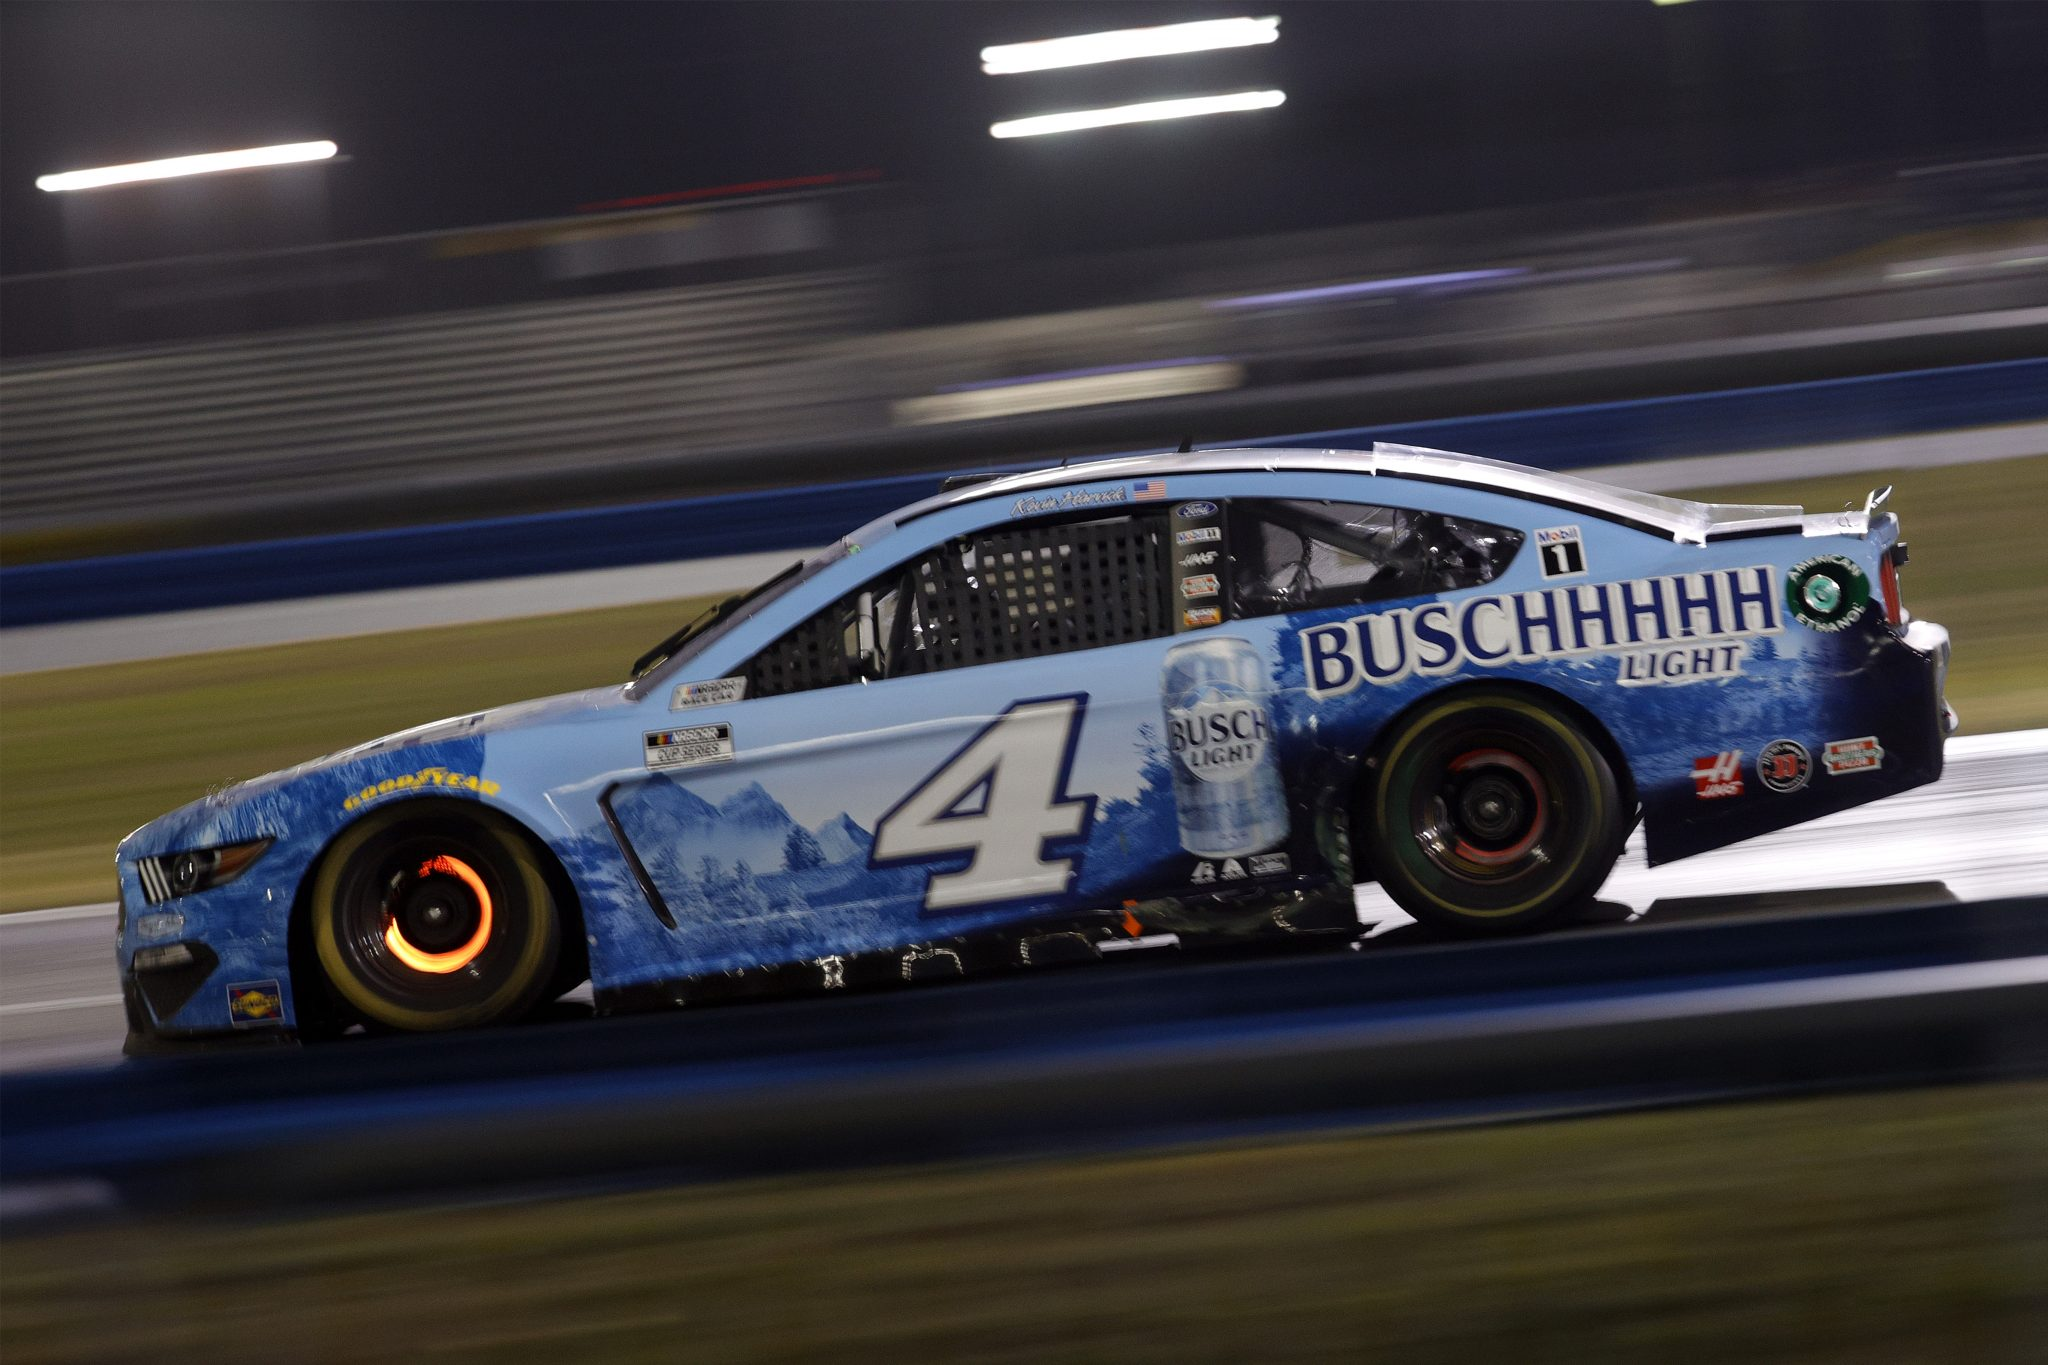 DAYTONA BEACH, FLORIDA - FEBRUARY 09: Kevin Harvick, driver of the #4 Busch Light Ford, drives during the NASCAR Cup Series Busch Clash at Daytona at Daytona International Speedway on February 09, 2021 in Daytona Beach, Florida. (Photo by Chris Graythen/Getty Images) | Getty Images